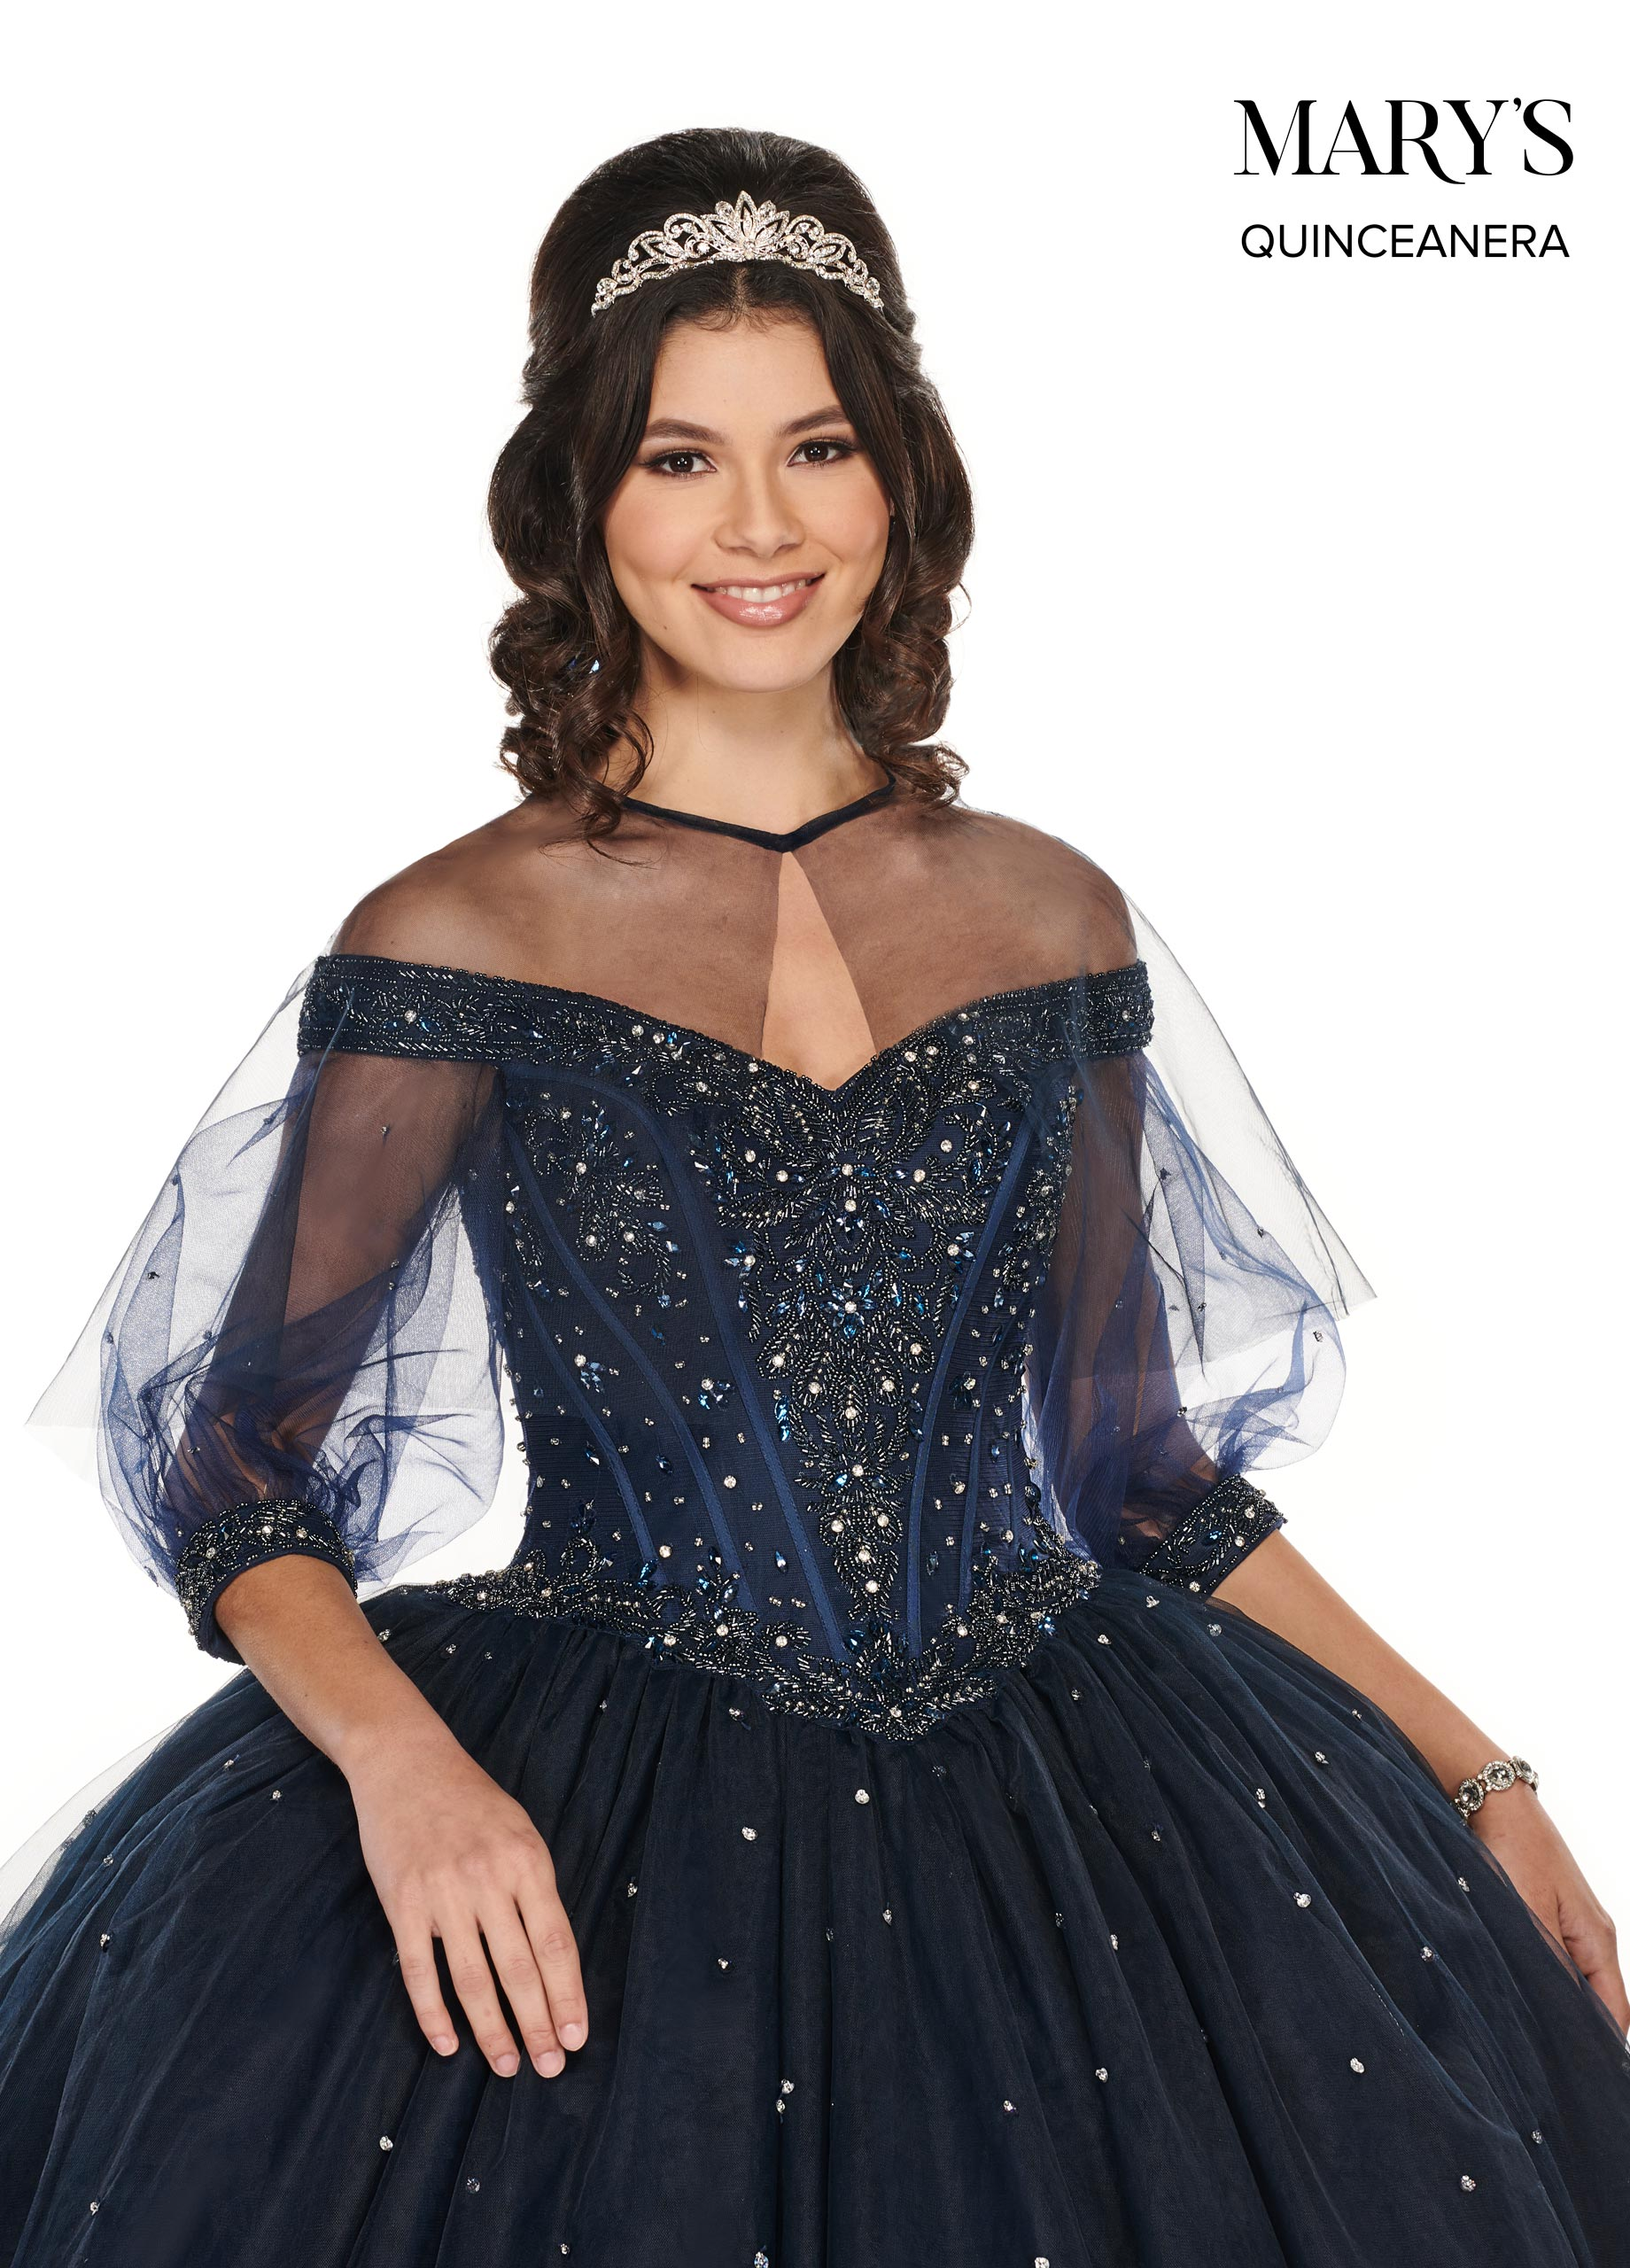 Marys Quinceanera Dresses | Mary's Quinceanera | Style - MQ1050